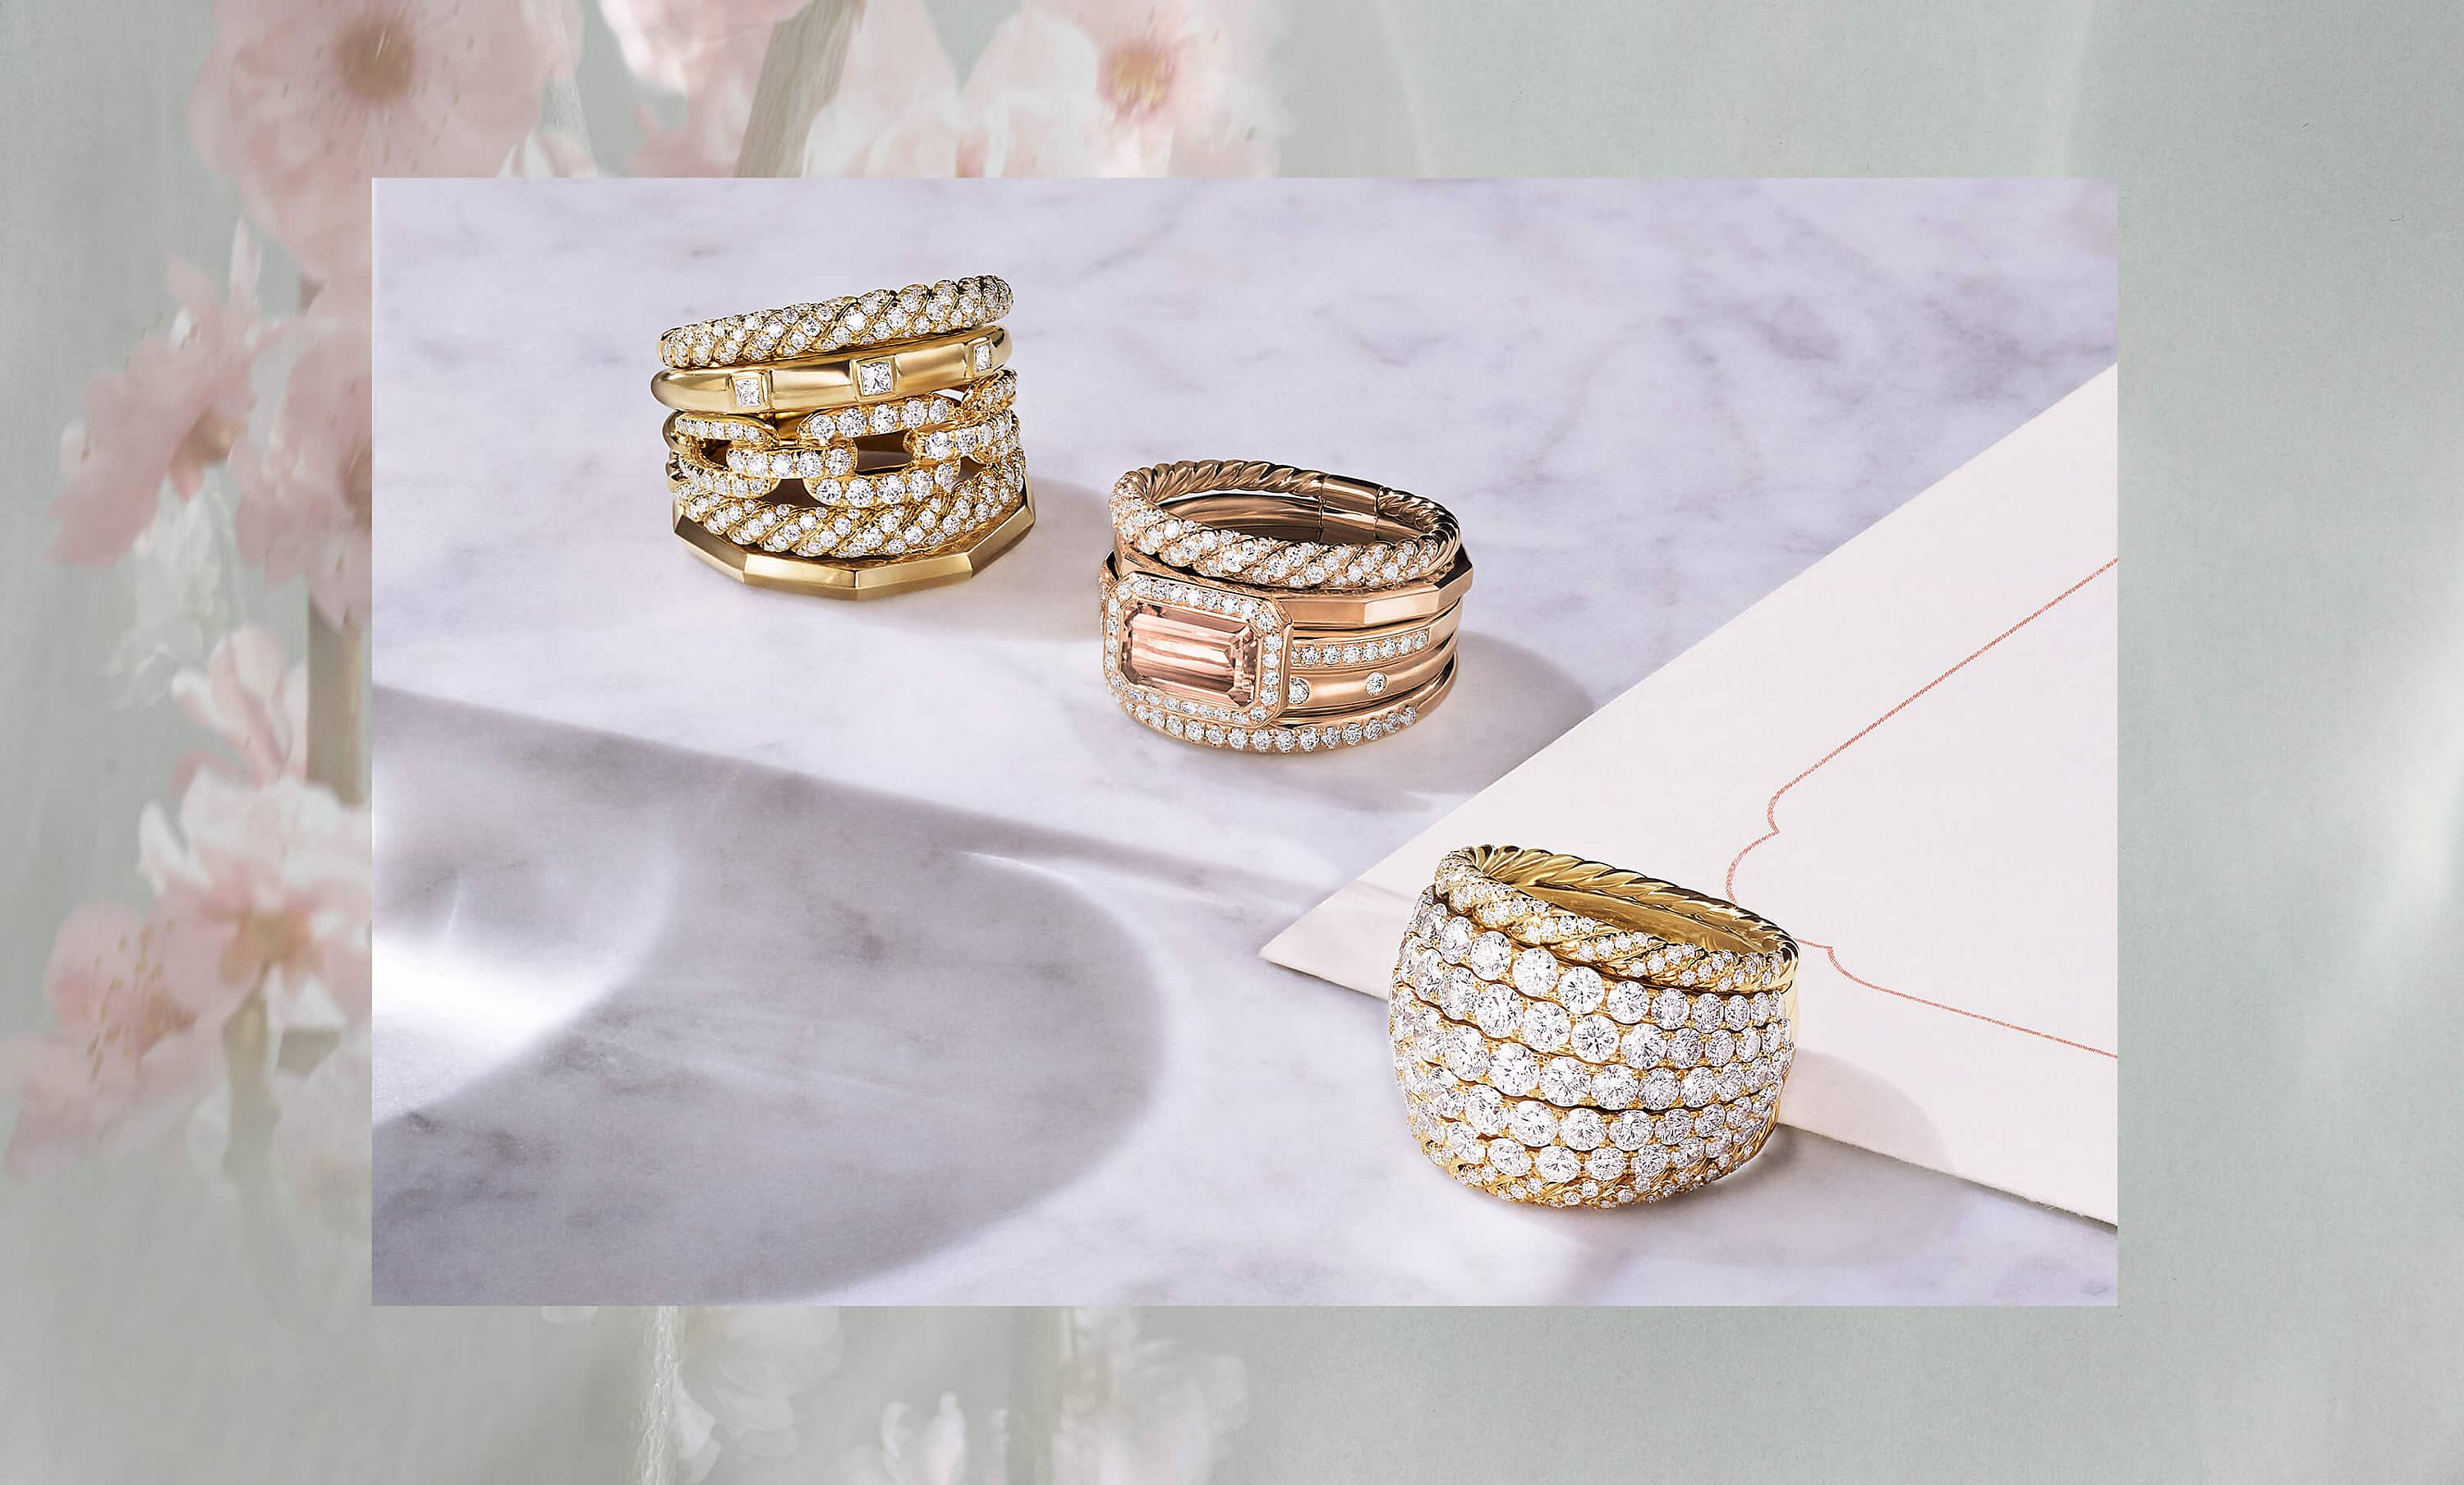 A color photo of three David Yurman multi-row rings is placed inside a border of soft-focus magnolia flowers. The center photo shows the rings scattered on a grey marble surface in between a glass of water and a white notecard. Two of the rings are crafted from 18K yellow gold with pavé diamonds. The center ring is crafted from 18K rose gold with a morganite center stone and pavé white diamonds.